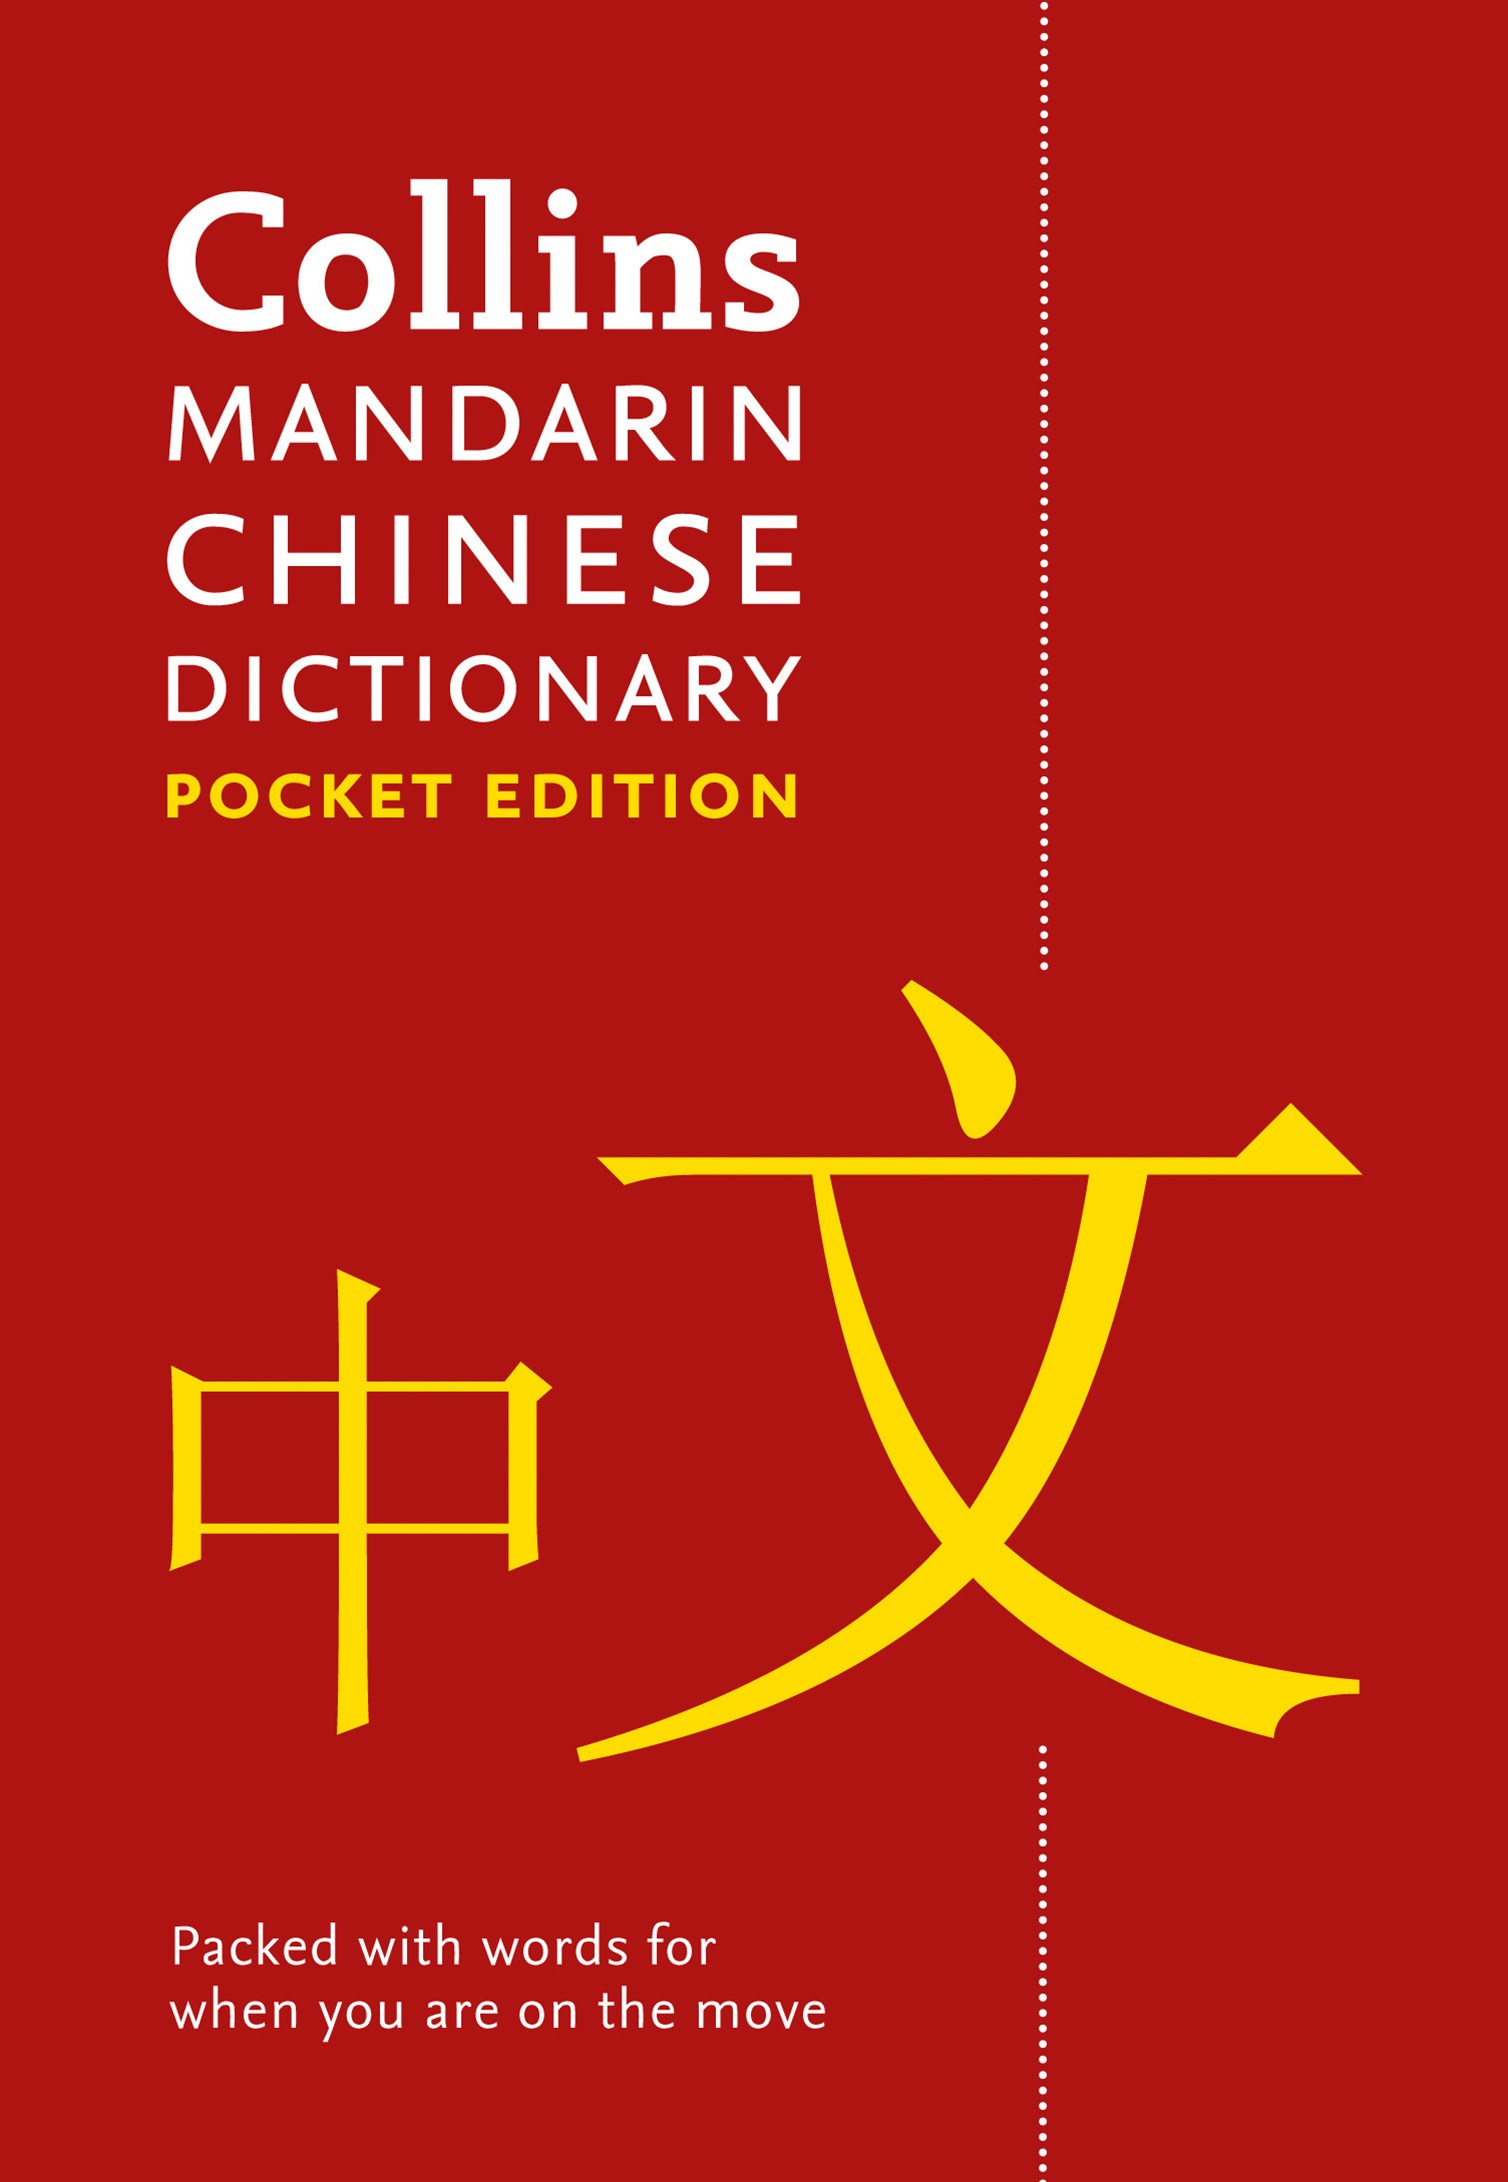 Collins Pocket Mandarin Chinese Dictionary [Fourth Edition]